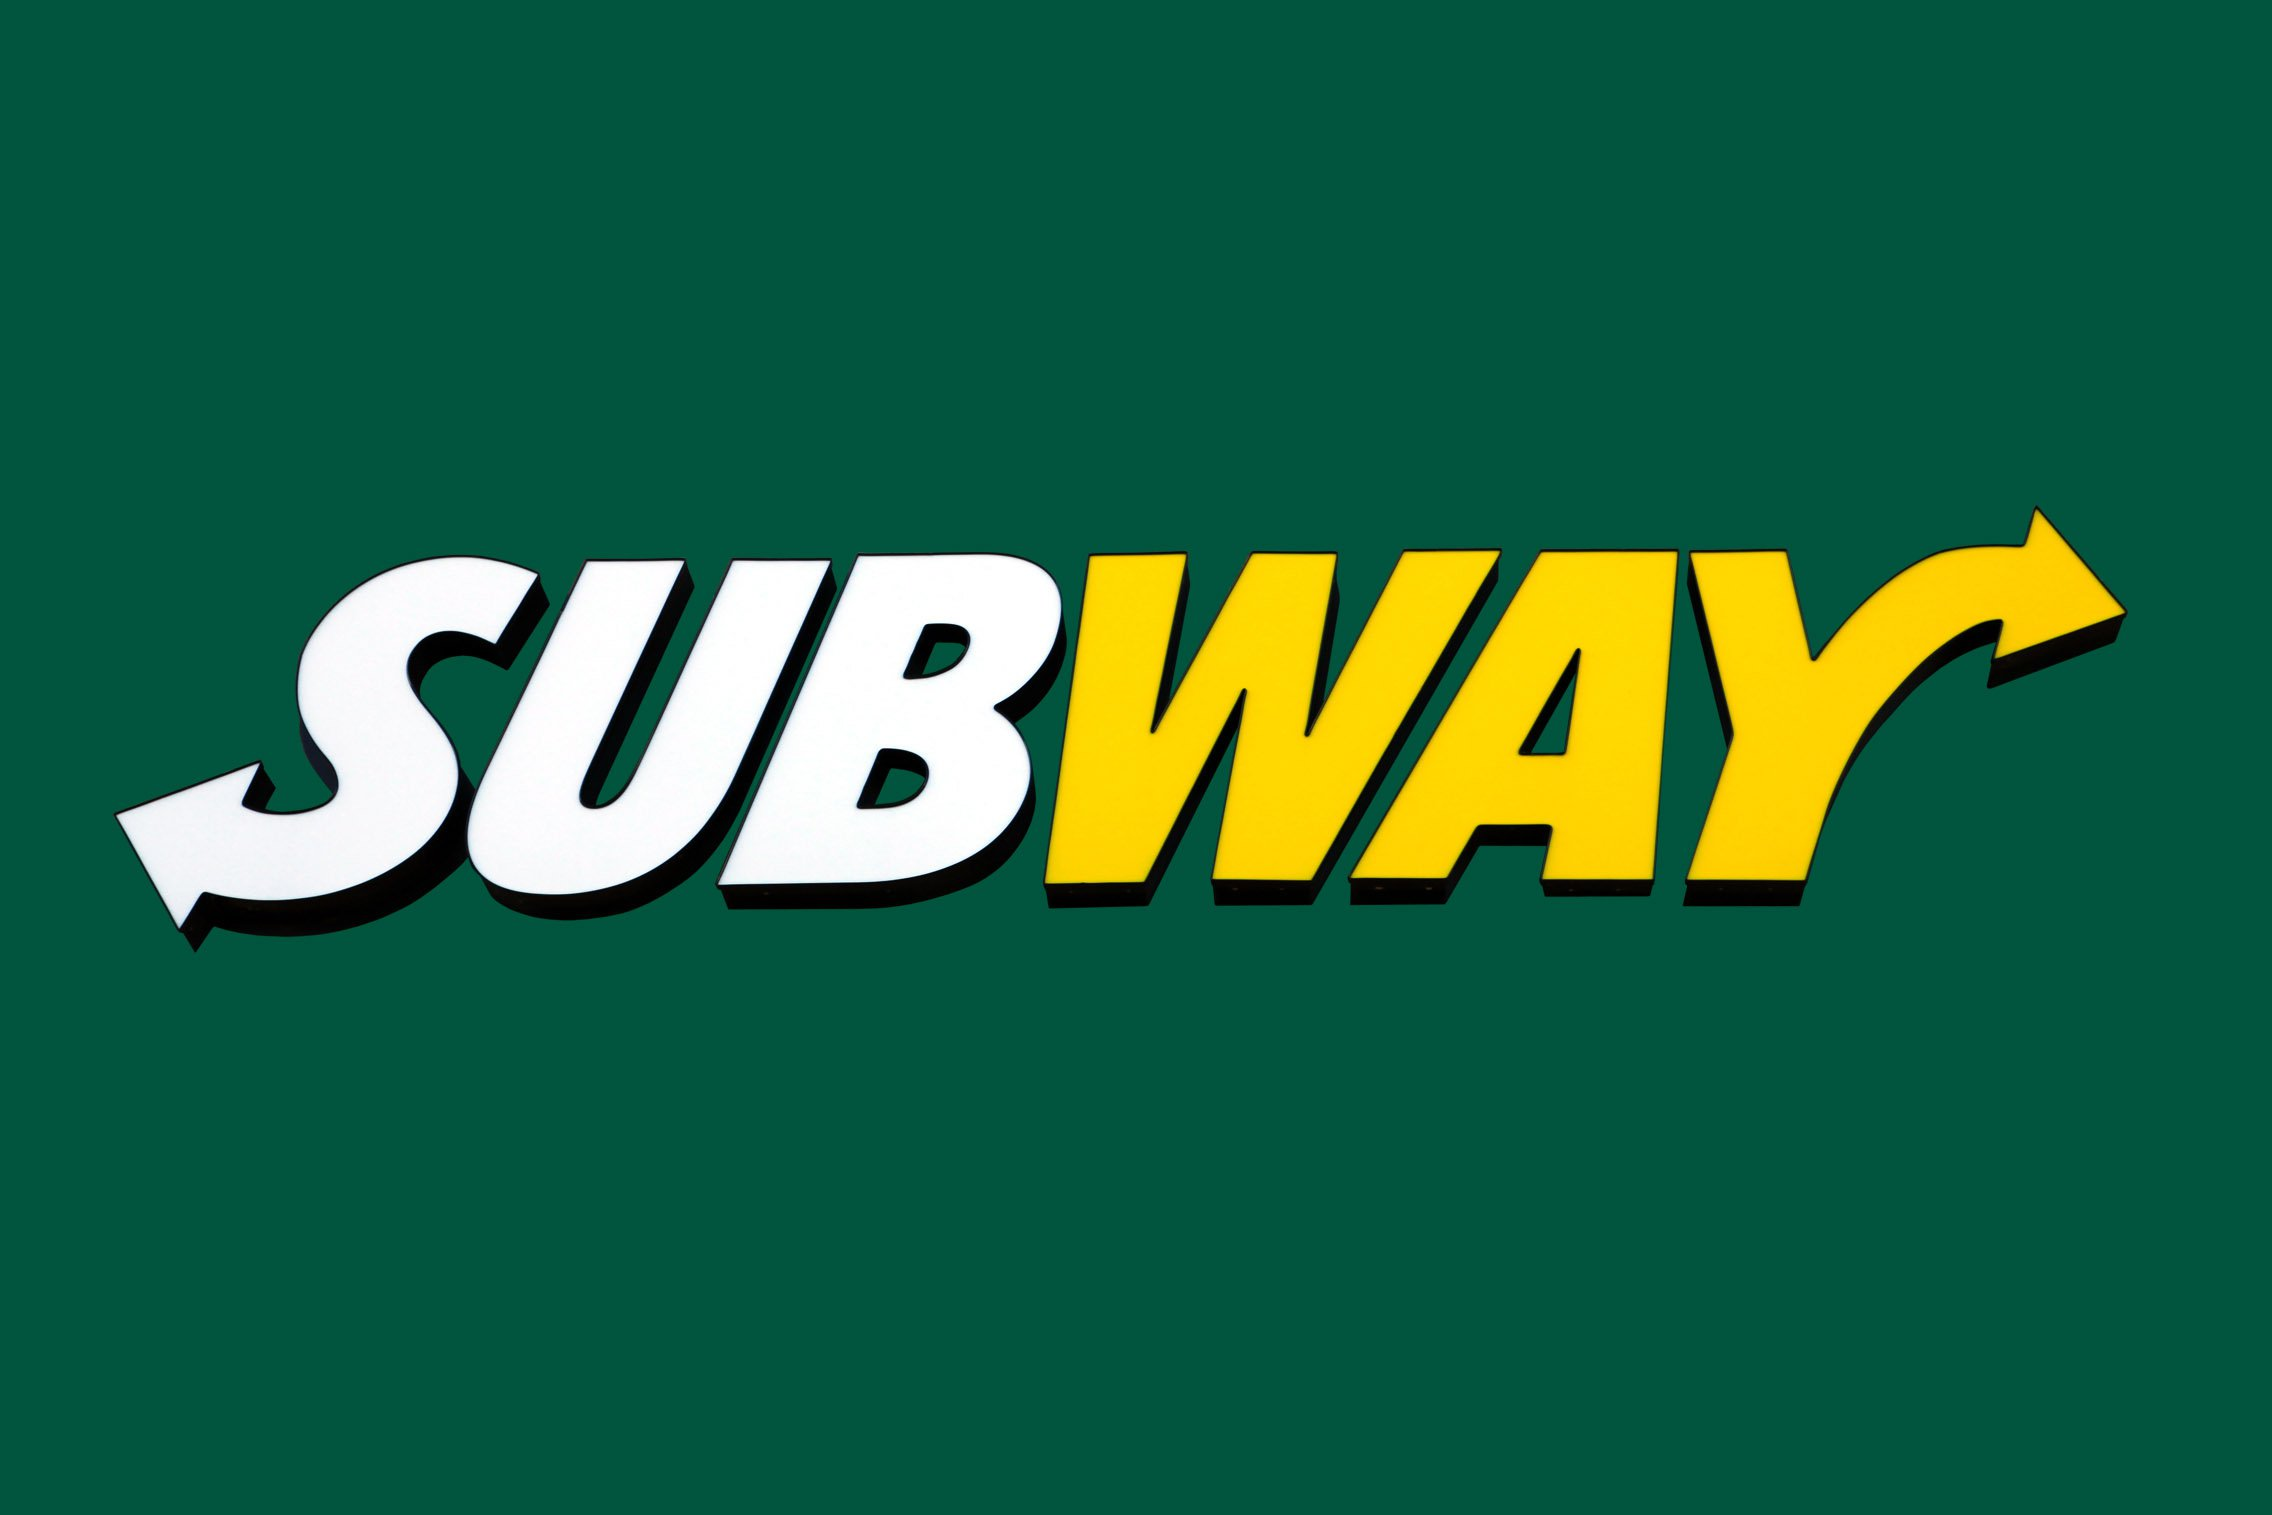 Color Subway Logo